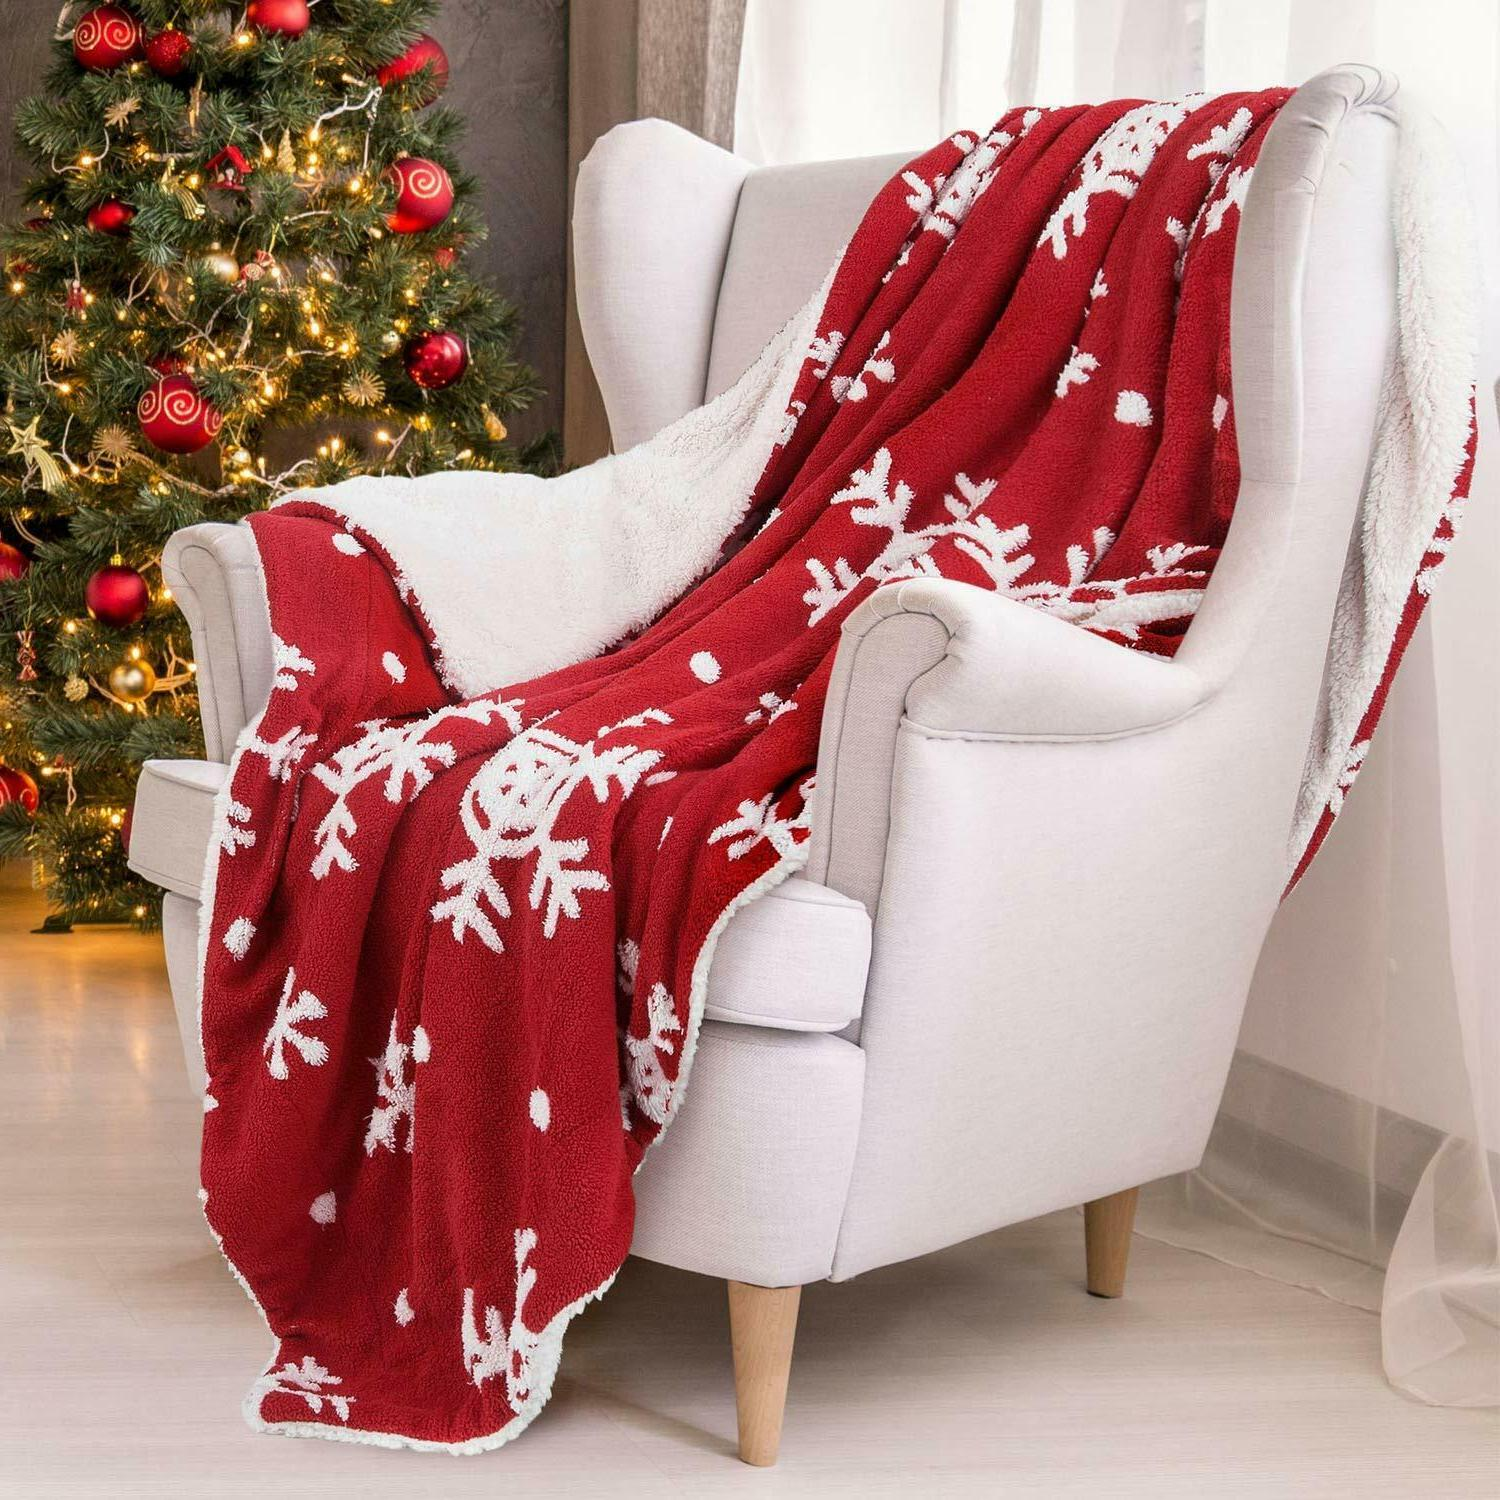 Bedsure Blanket Decoration Snowflake Blanket